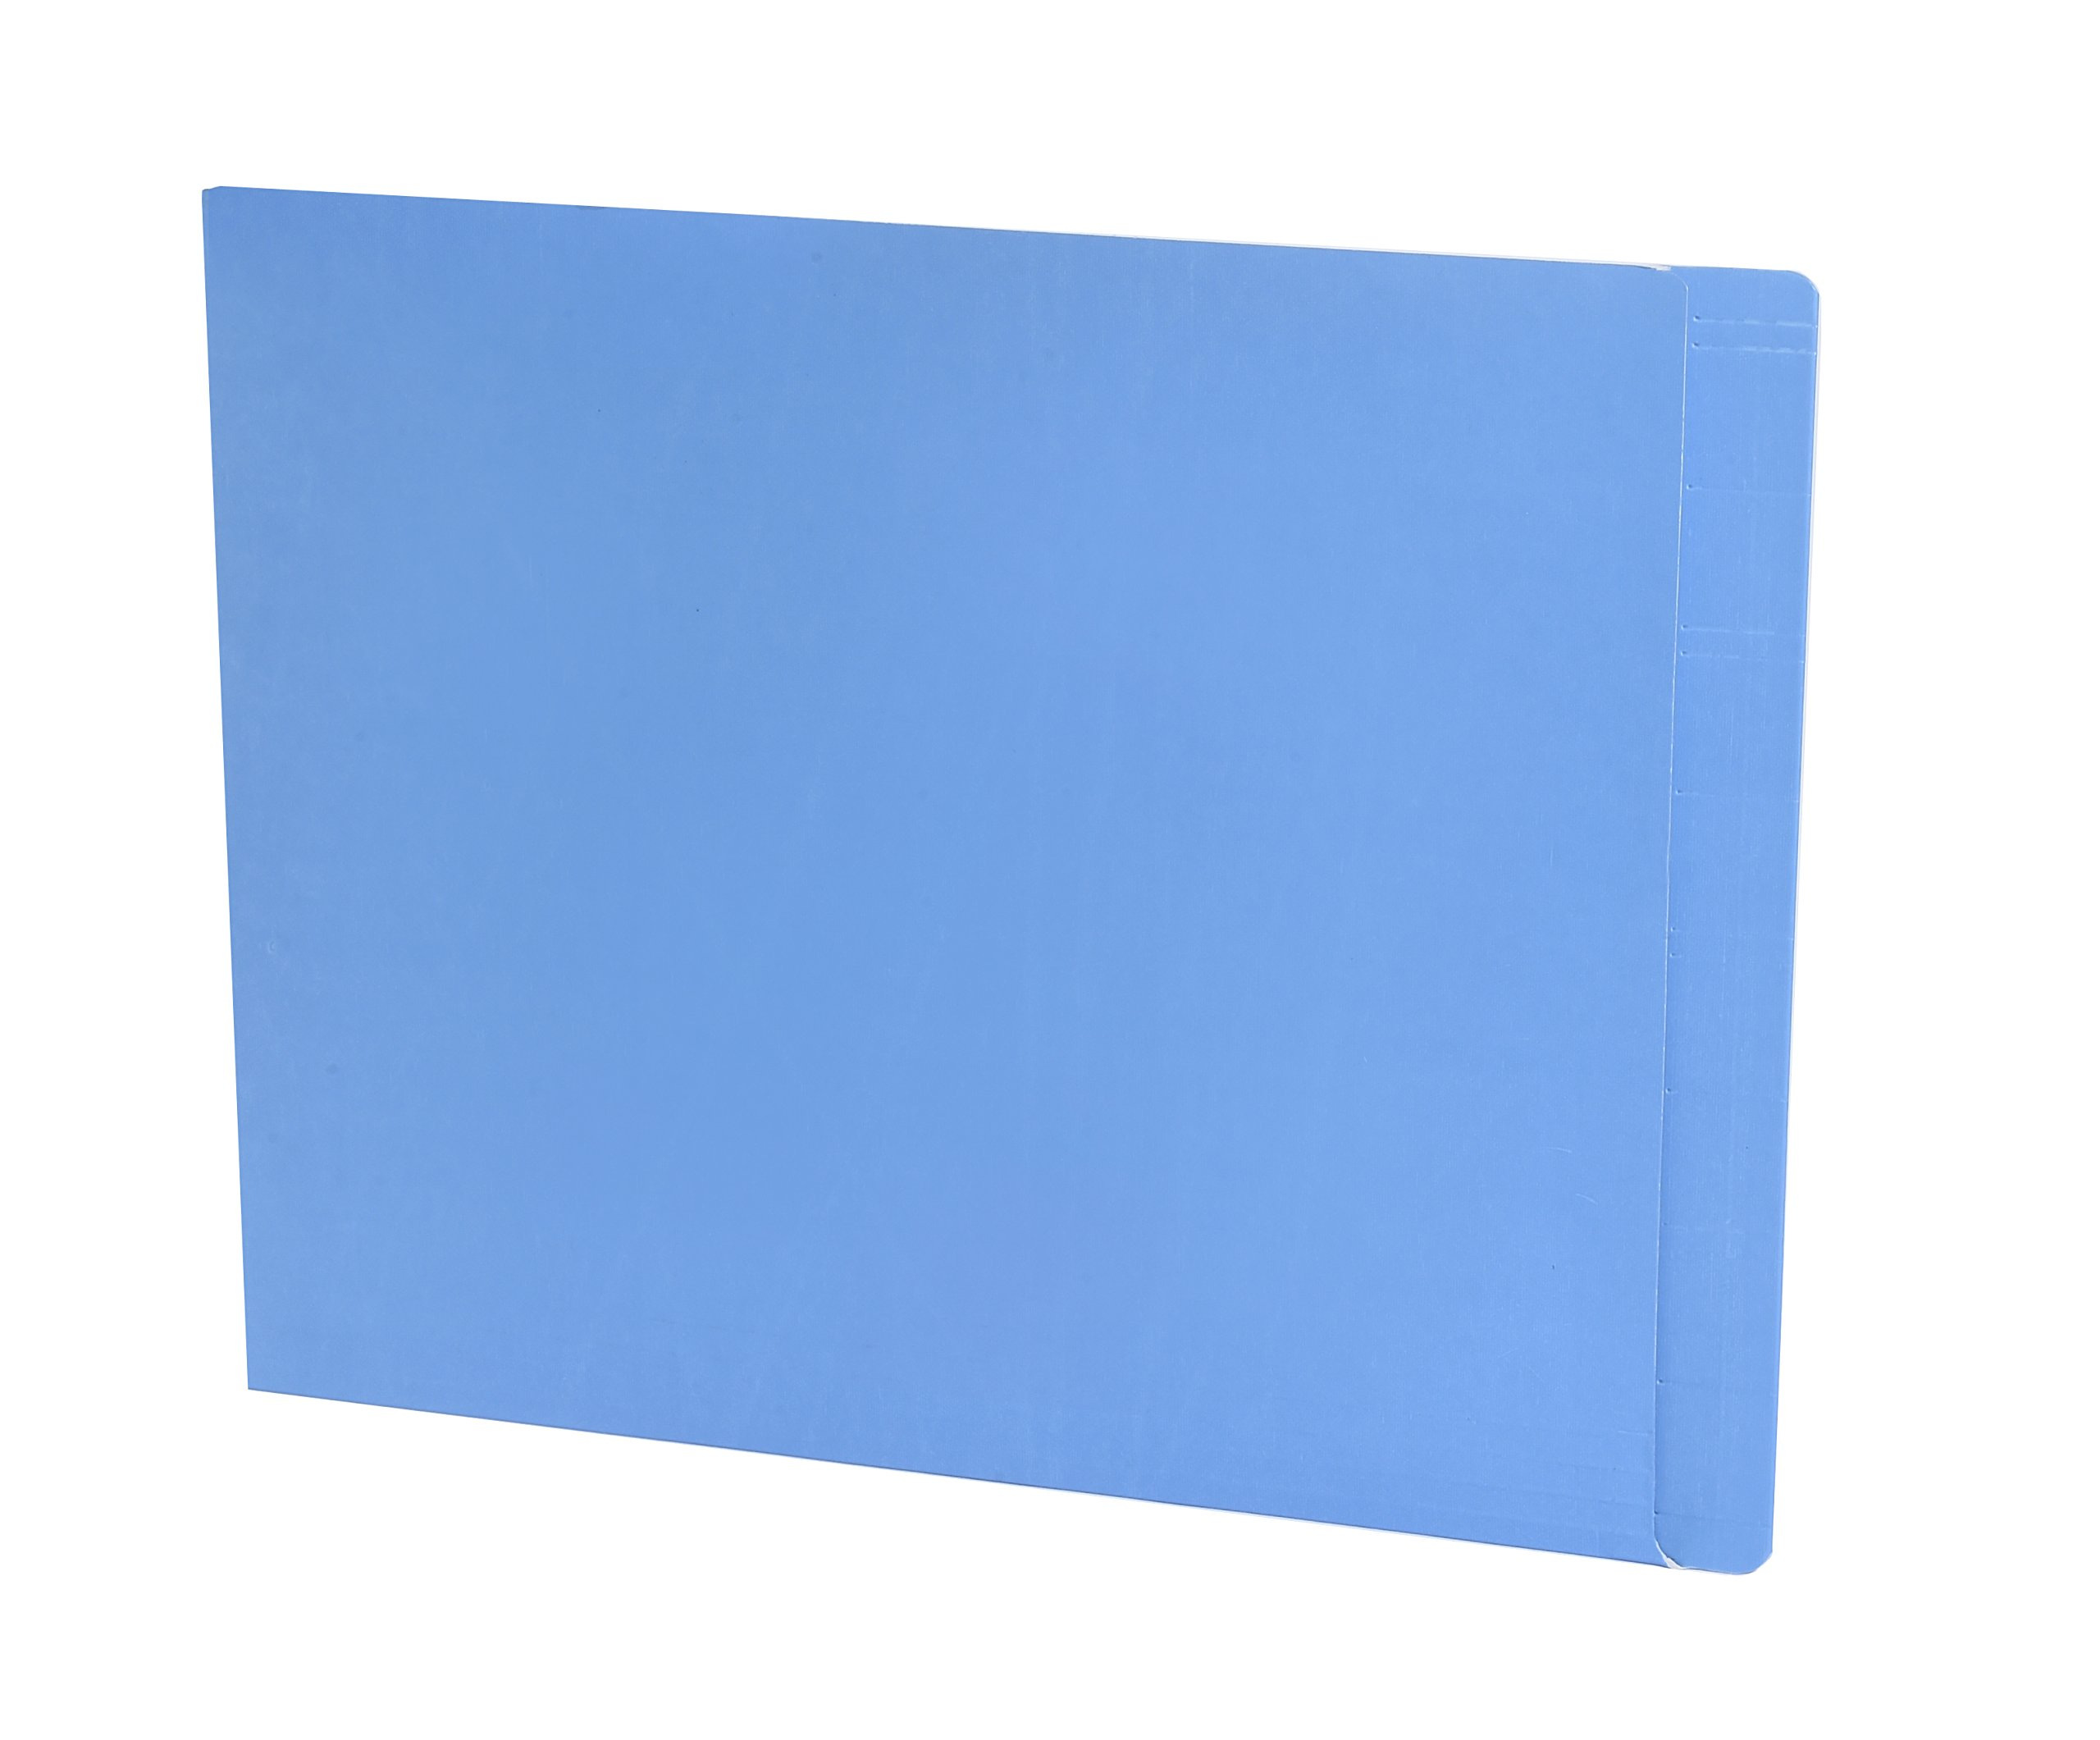 TAB FORTIfile Folder, Azure Blue, 13.5 pt., Doubly Ply End Tab, Letter, 75 per Pack